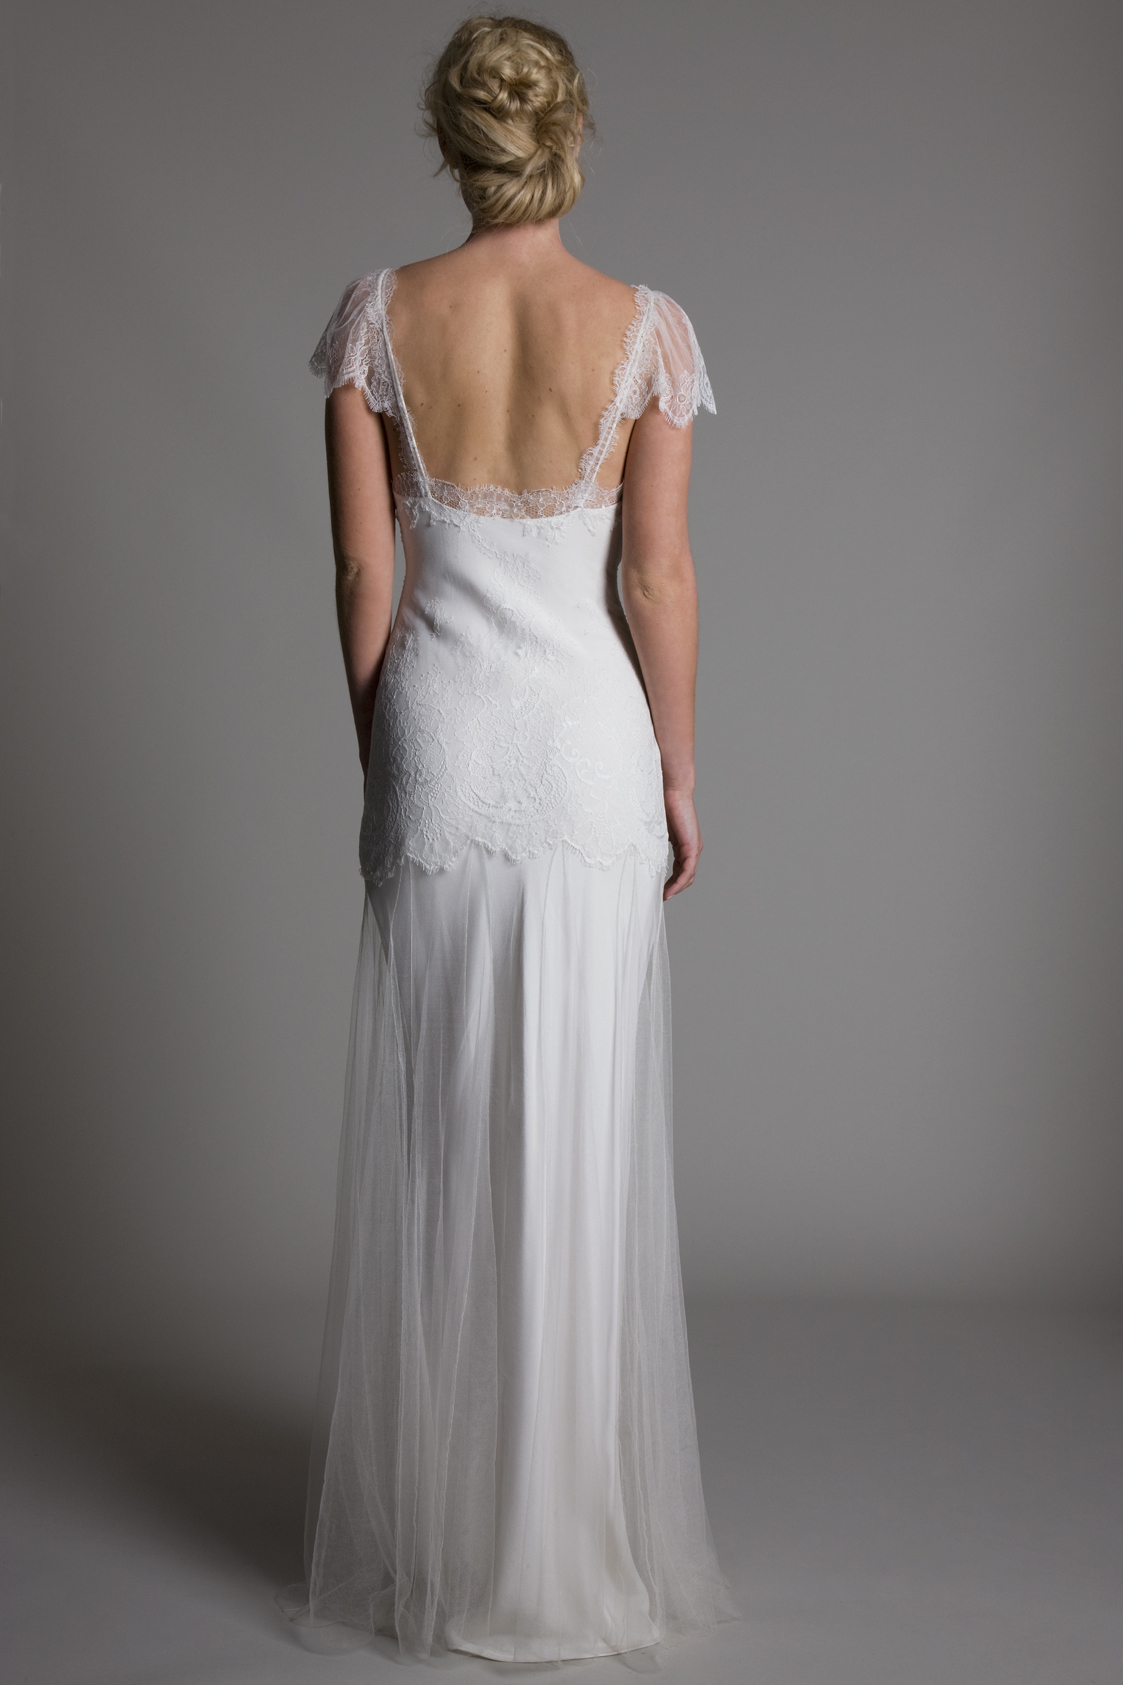 Back view of the Kate chantilly lace bodice and cap sleeves with tulle skirt and satin scoop neck slip bridal wedding dress by Halfpenny London